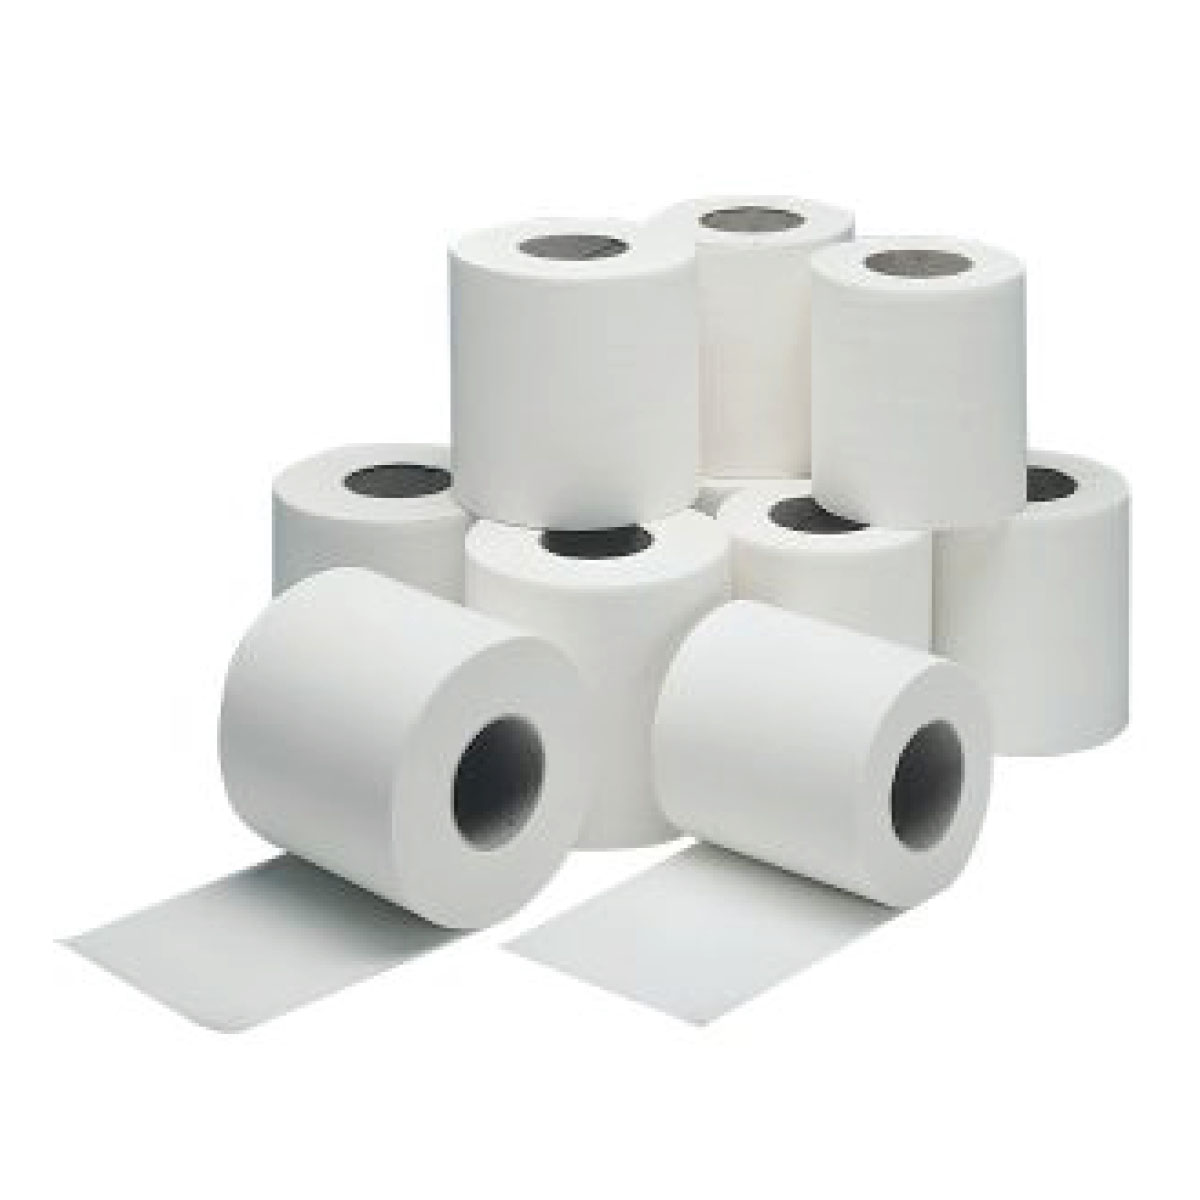 Toilet Rolls The Vet Store